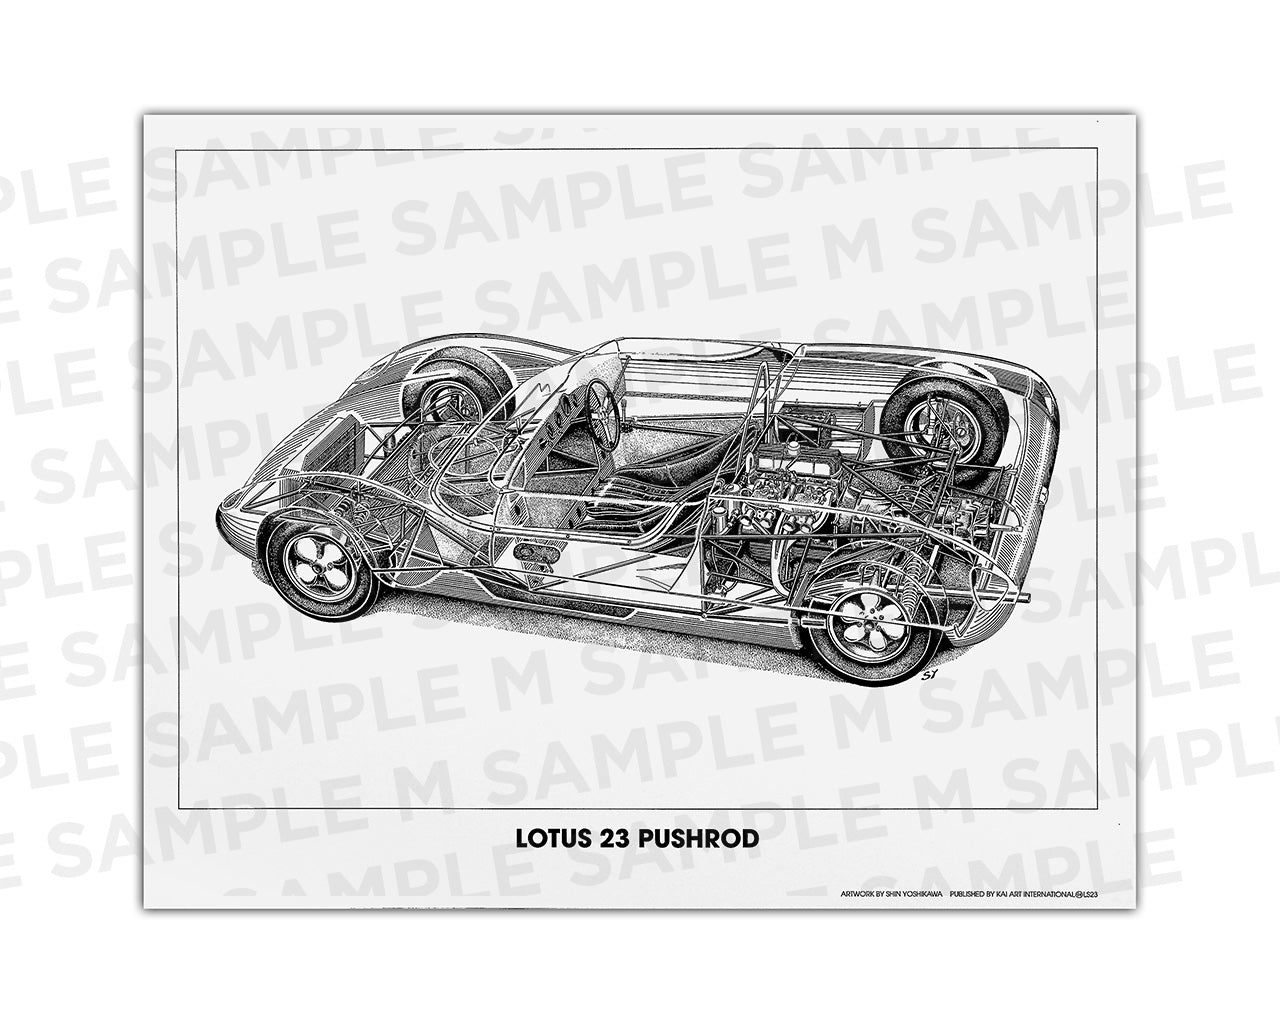 Authentic Lotus 23 Pushrod cutaway drawing print by renowned automotive artist Shin Yoshikawa